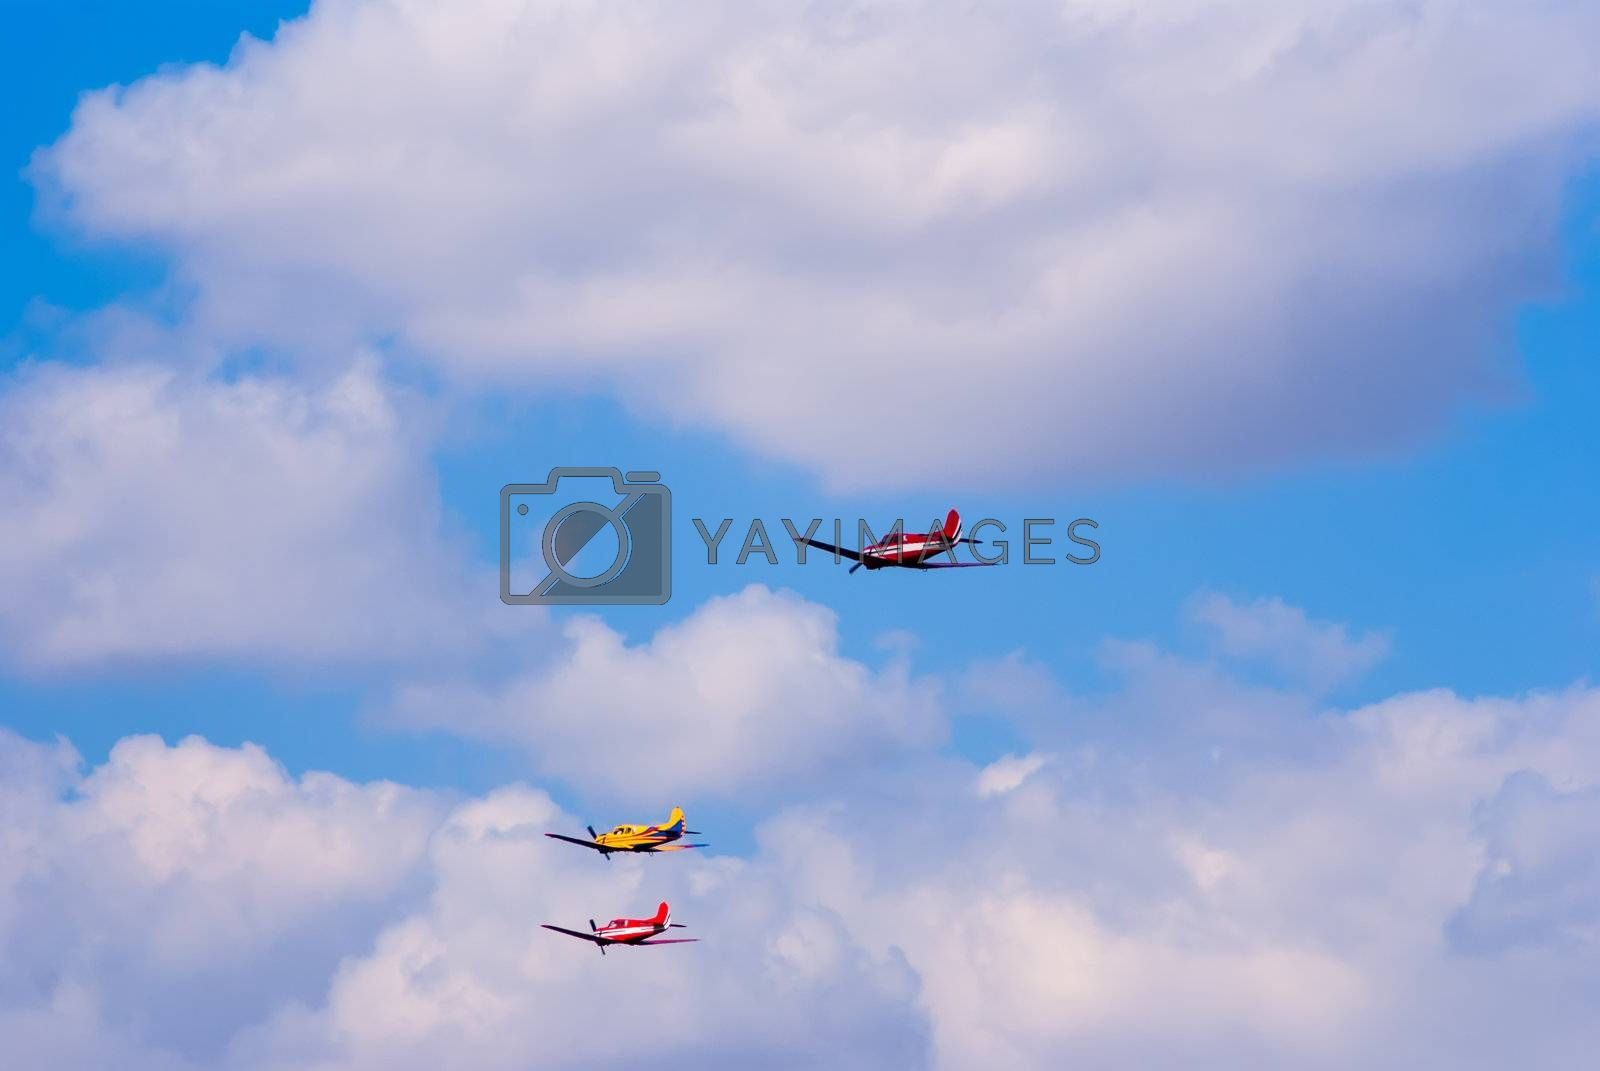 formation flying light training and commercial aircraft